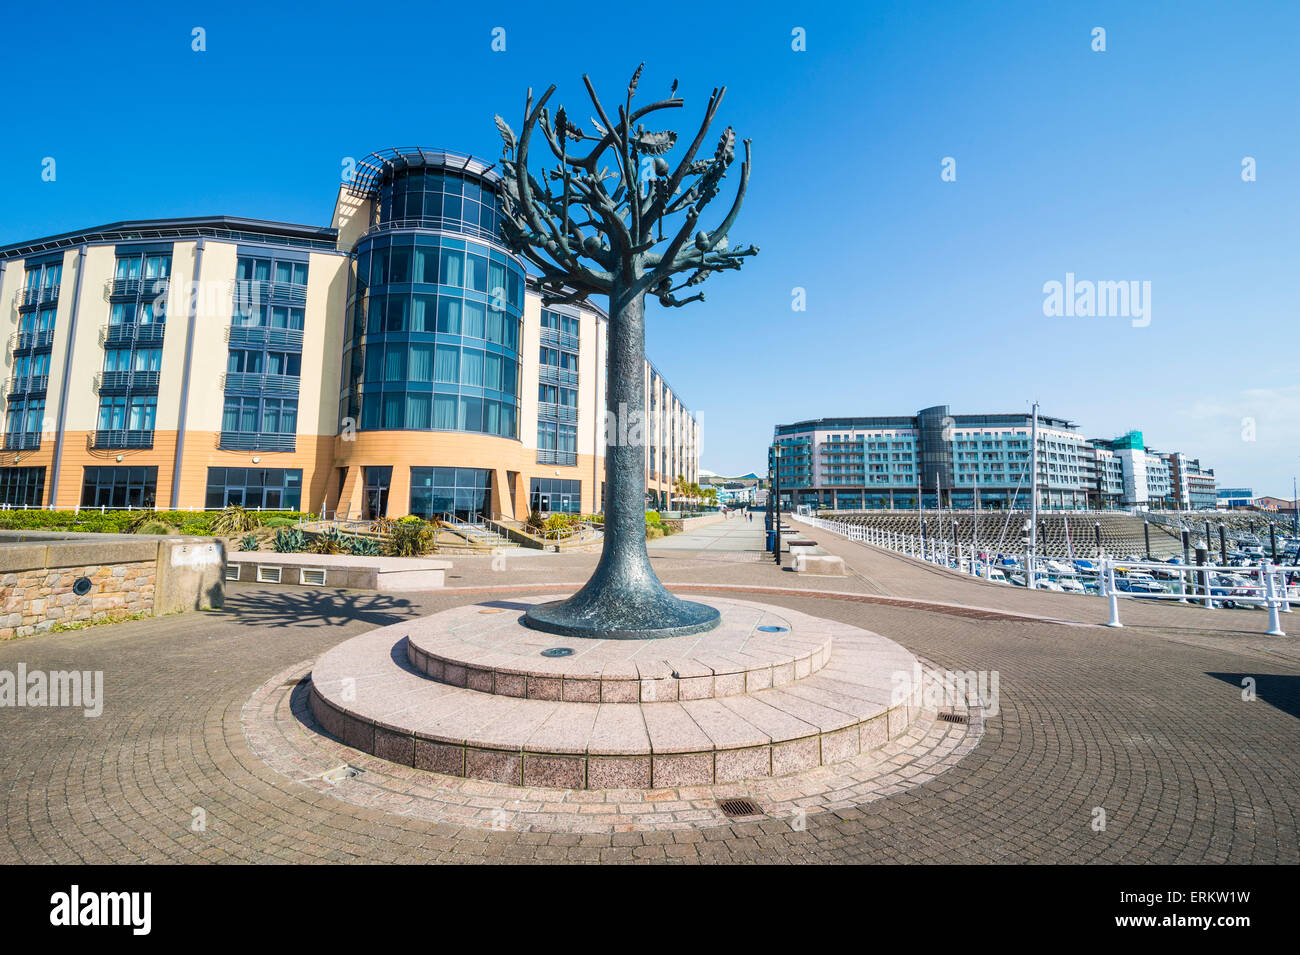 Modern sculpture in the harbour of St. Helier, Jersey, Channel Islands, United Kingdom, Europe - Stock Image